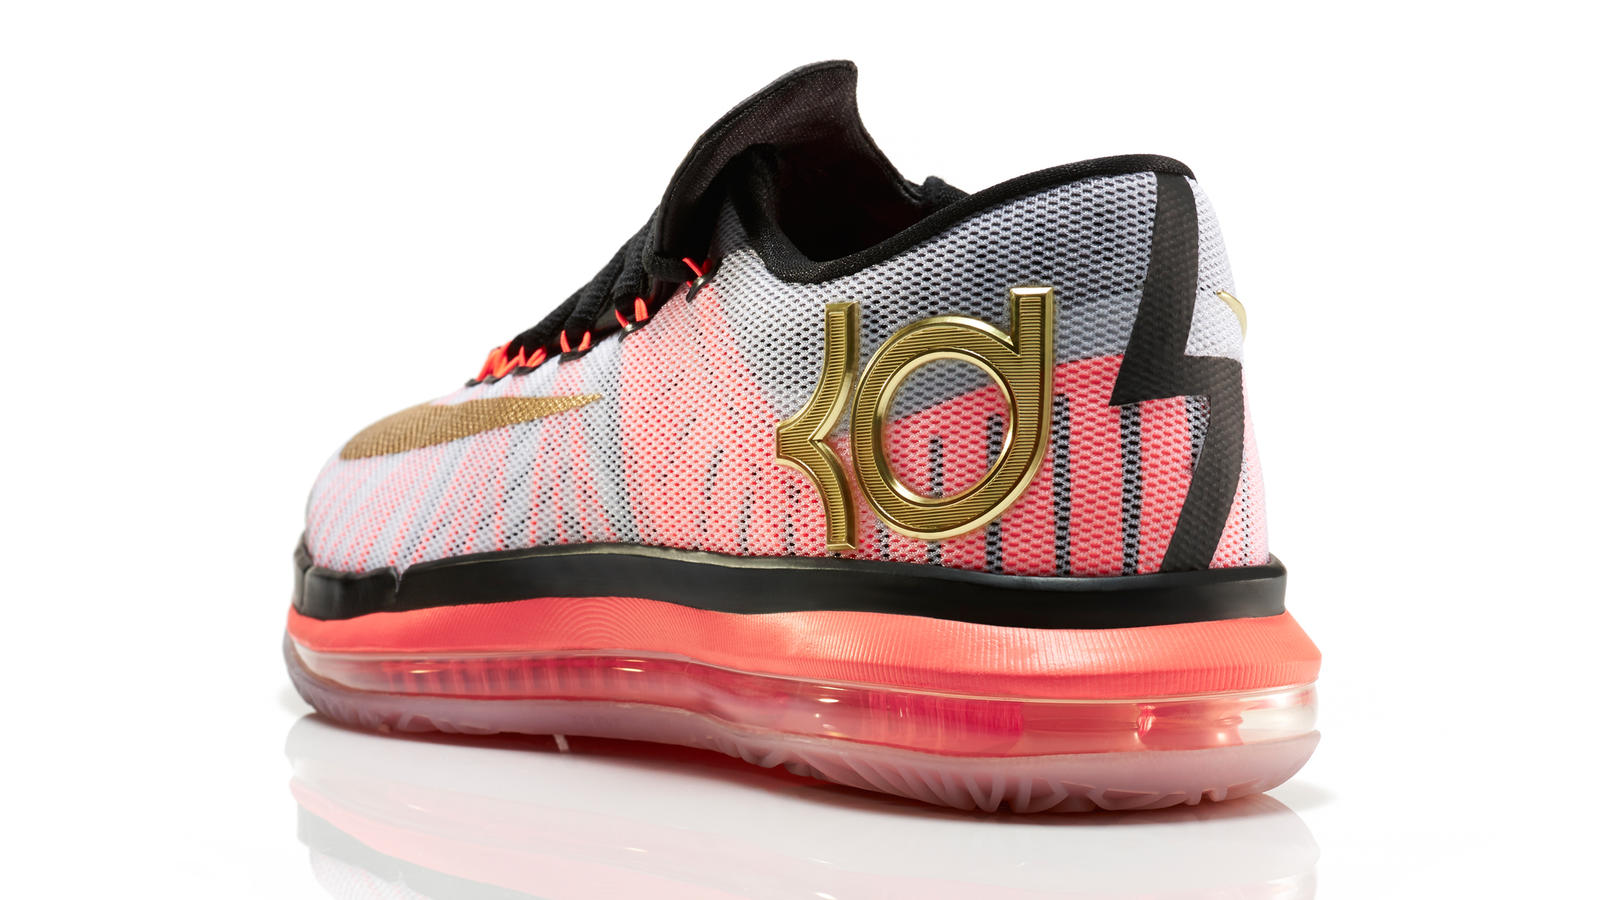 kdvi_elite_quest_100_3qtr_back_low_0228_fb